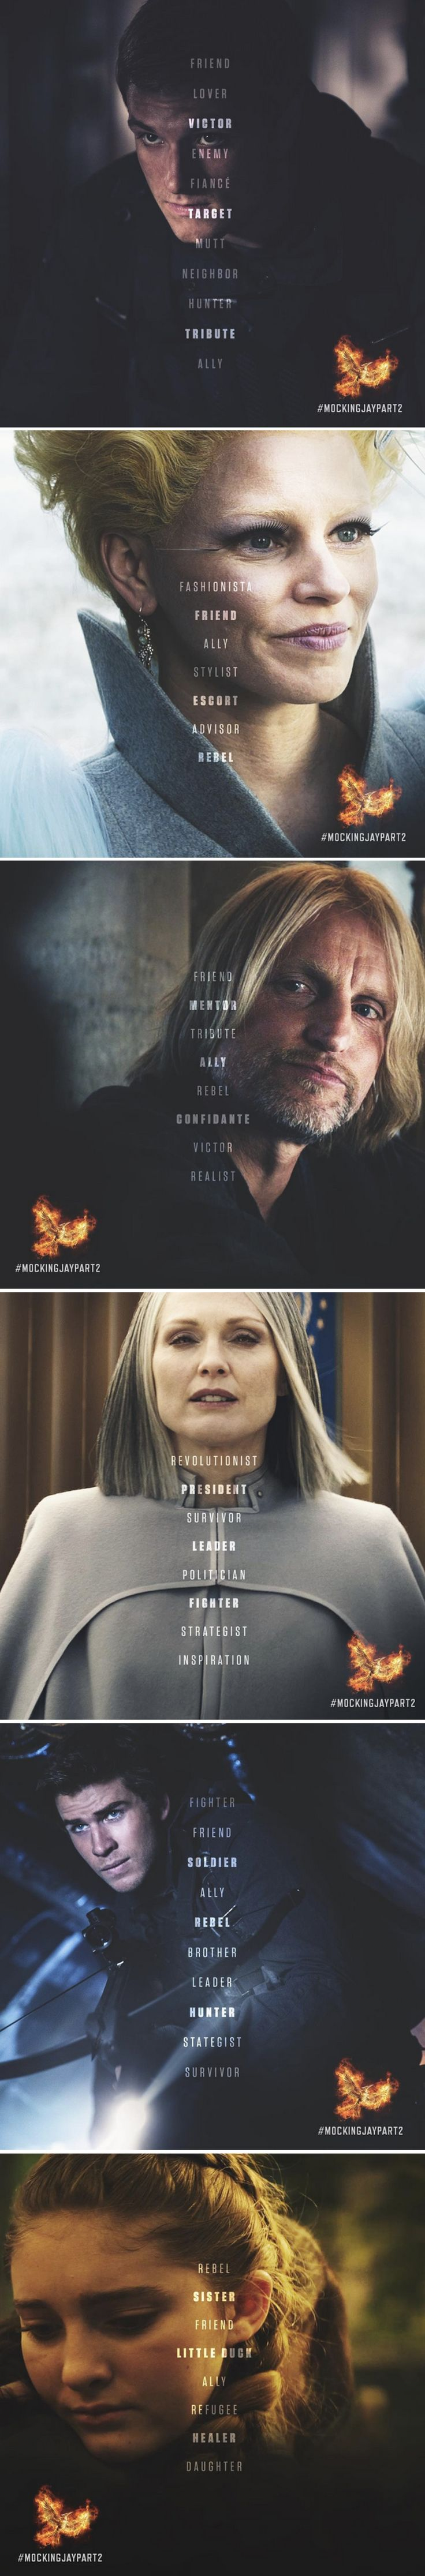 The Hunger Games: Mockingjay - Part 2 Character Quotes